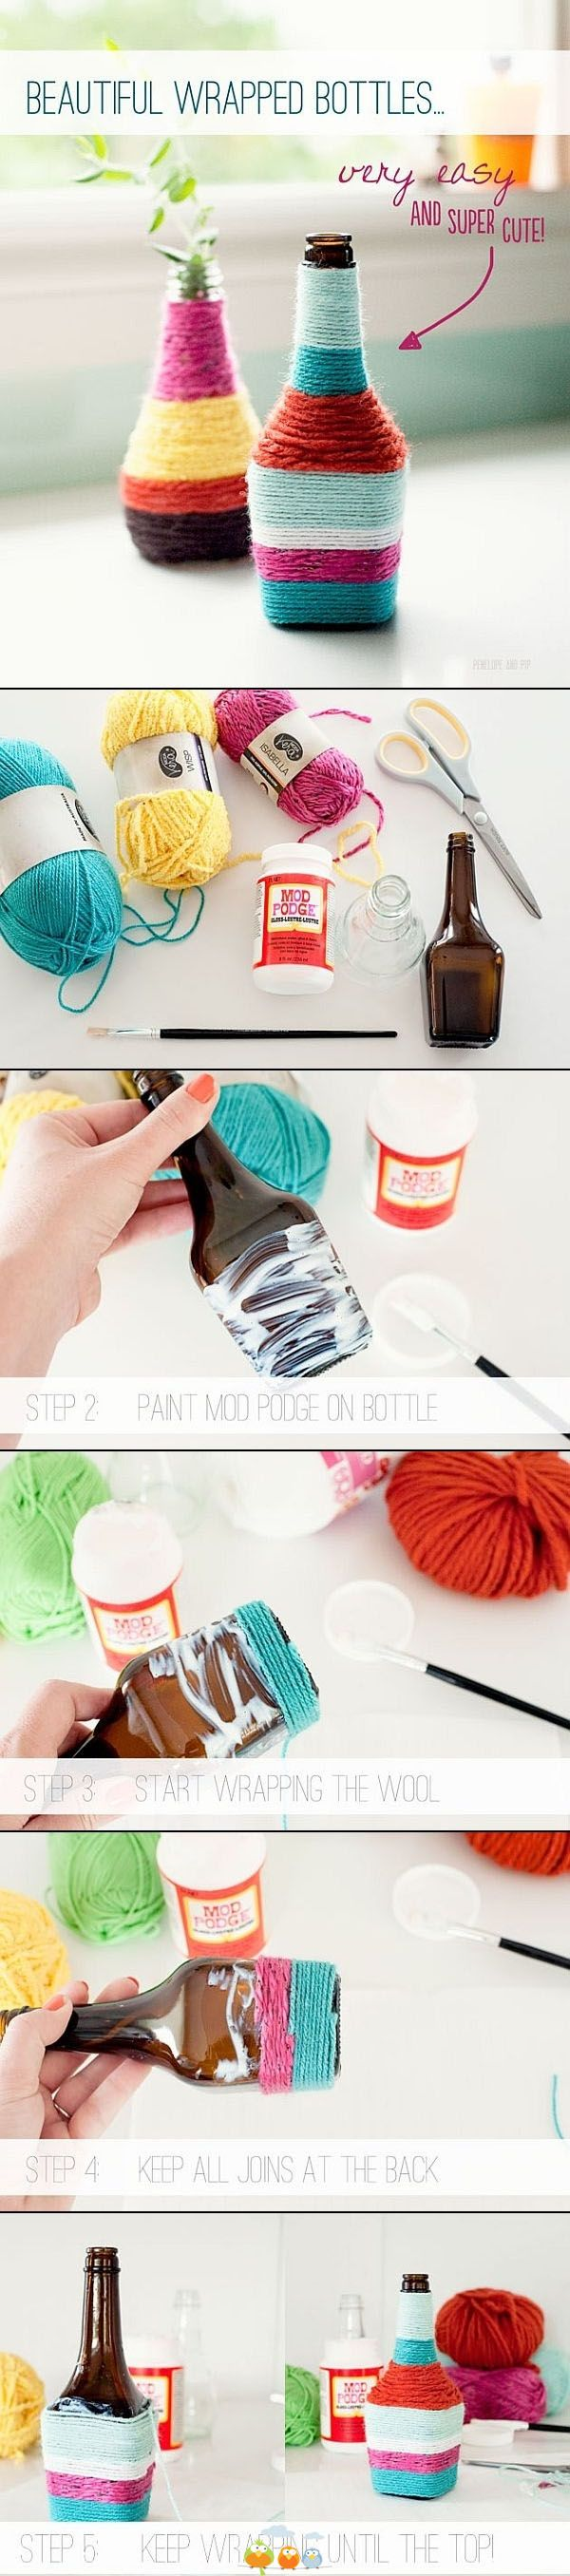 Wrapped Bottles, I'm definitely going to try this!